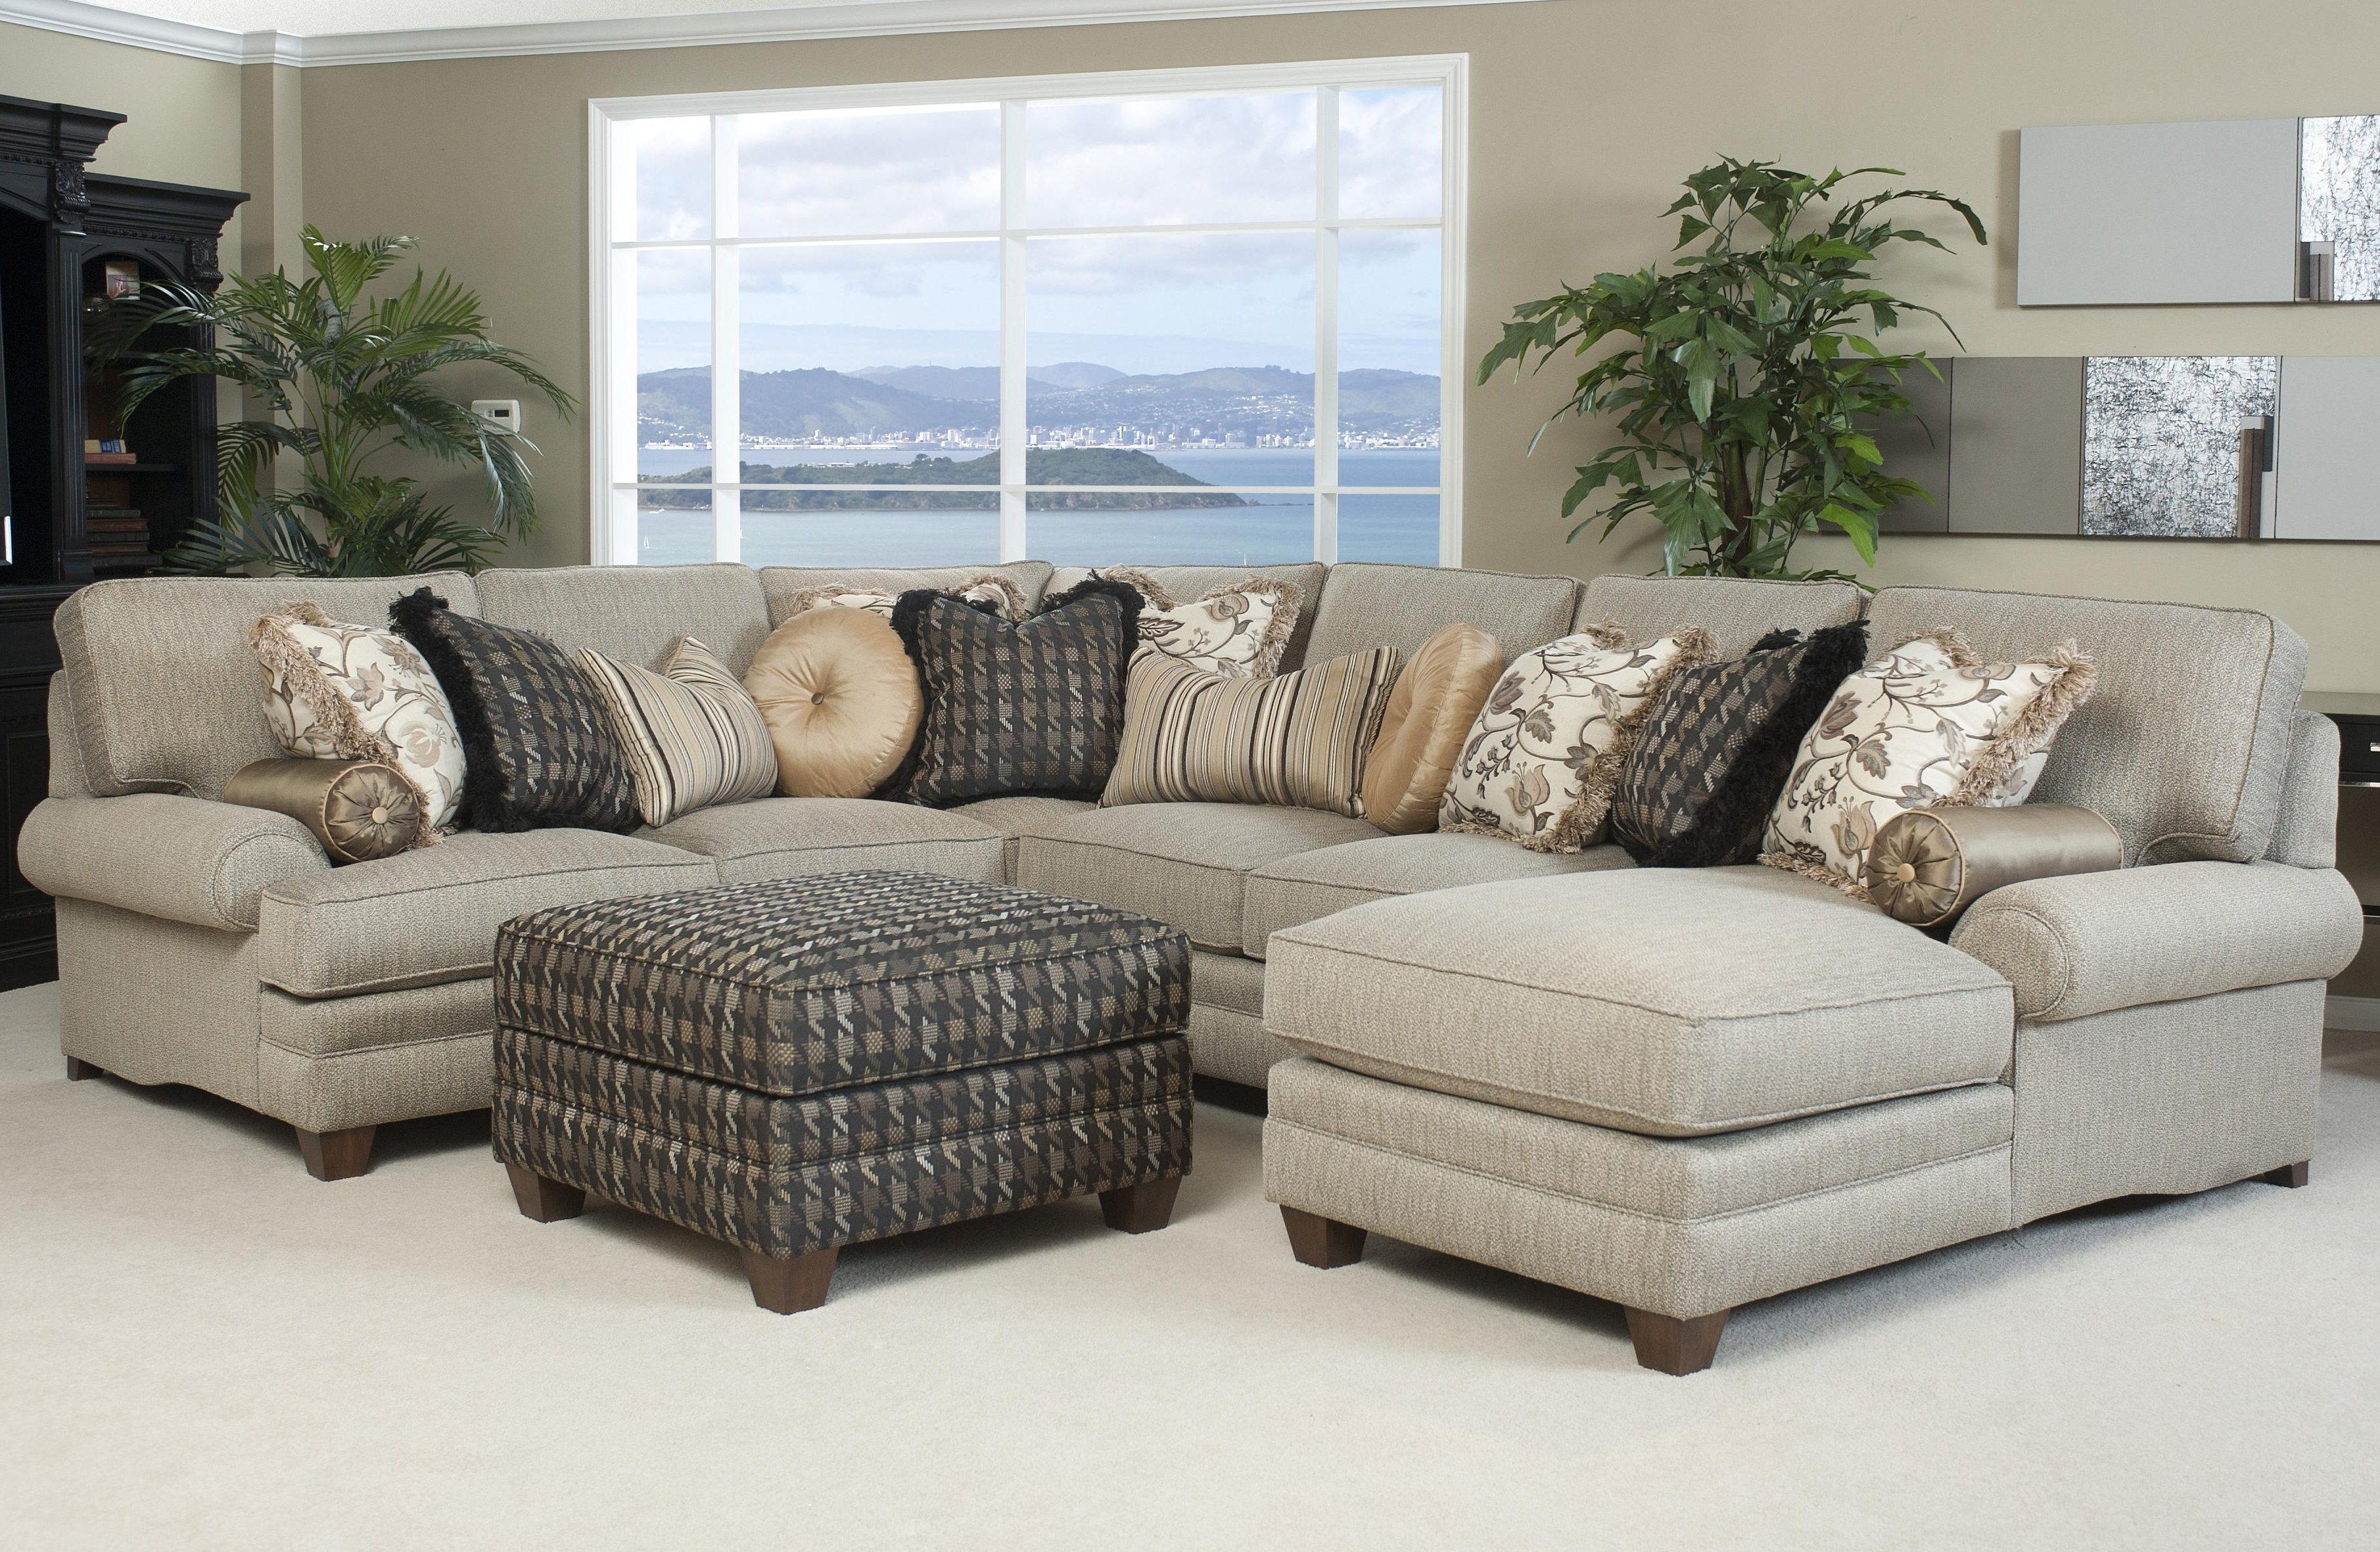 Most Popular Comfortable Sectional Sofas Inside Most Comfortable Leather Sectional Sofa • Leather Sofa (View 9 of 15)